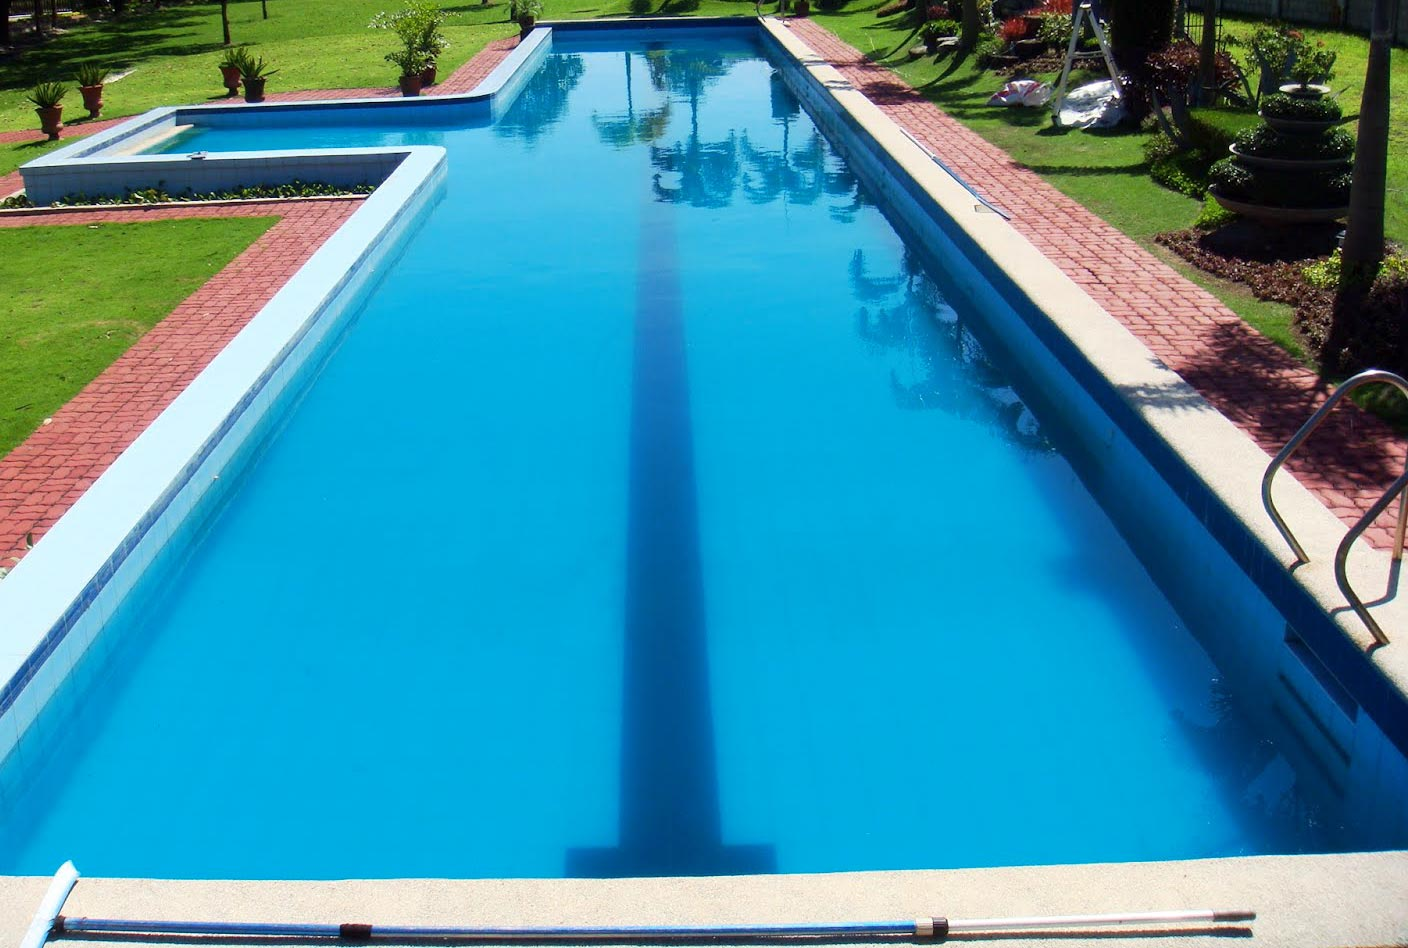 Greecian pools bakersfield ca lap exercise swimming pools for How to swim laps in small pool